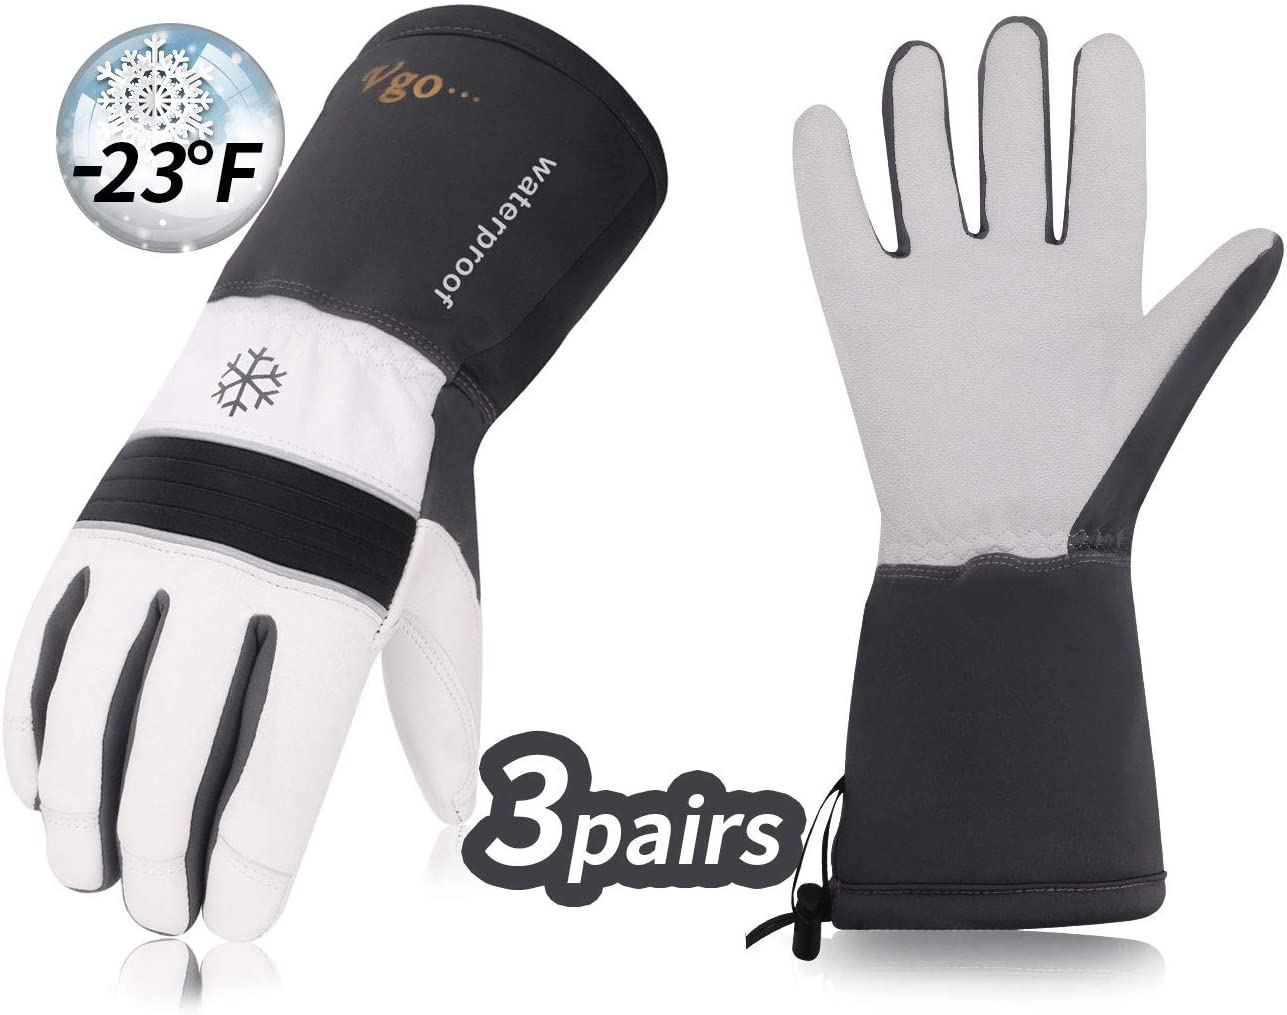 Vgo 3Pairs -23 ℉ or above 3M Thinsulate G200 Lined Goatskin Leather Winter Warm Ski Gloves, Cold Storage Work Gloves, Waterproof Insert (Size M,Grey,GA8435FW)